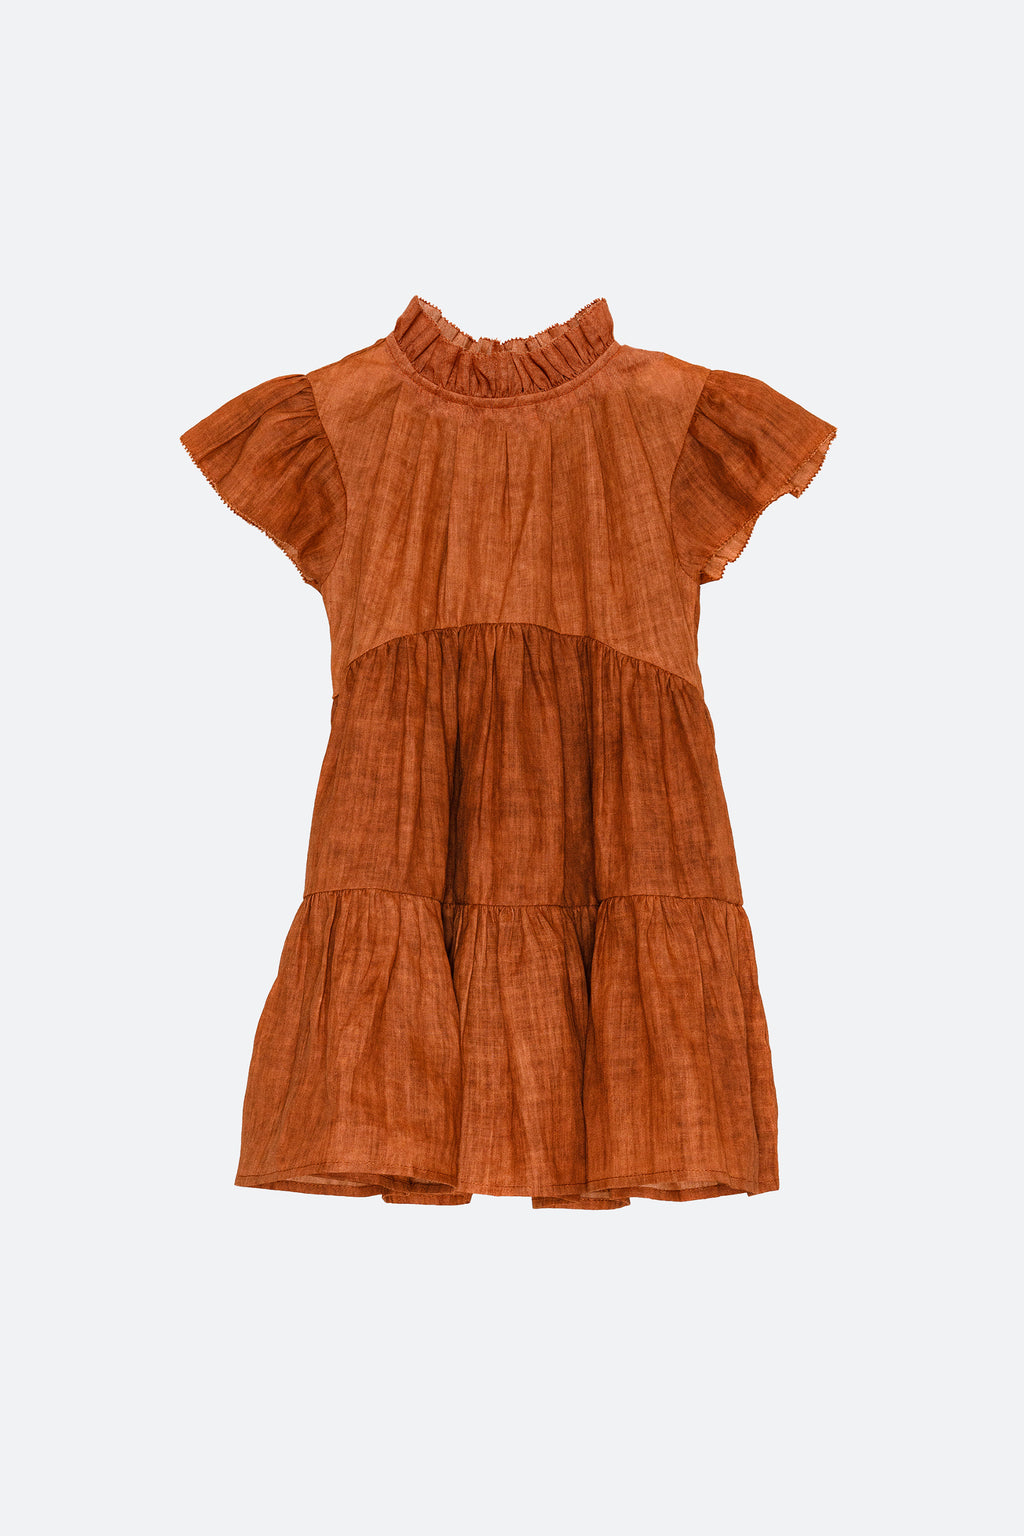 Dogwood Kids Dress